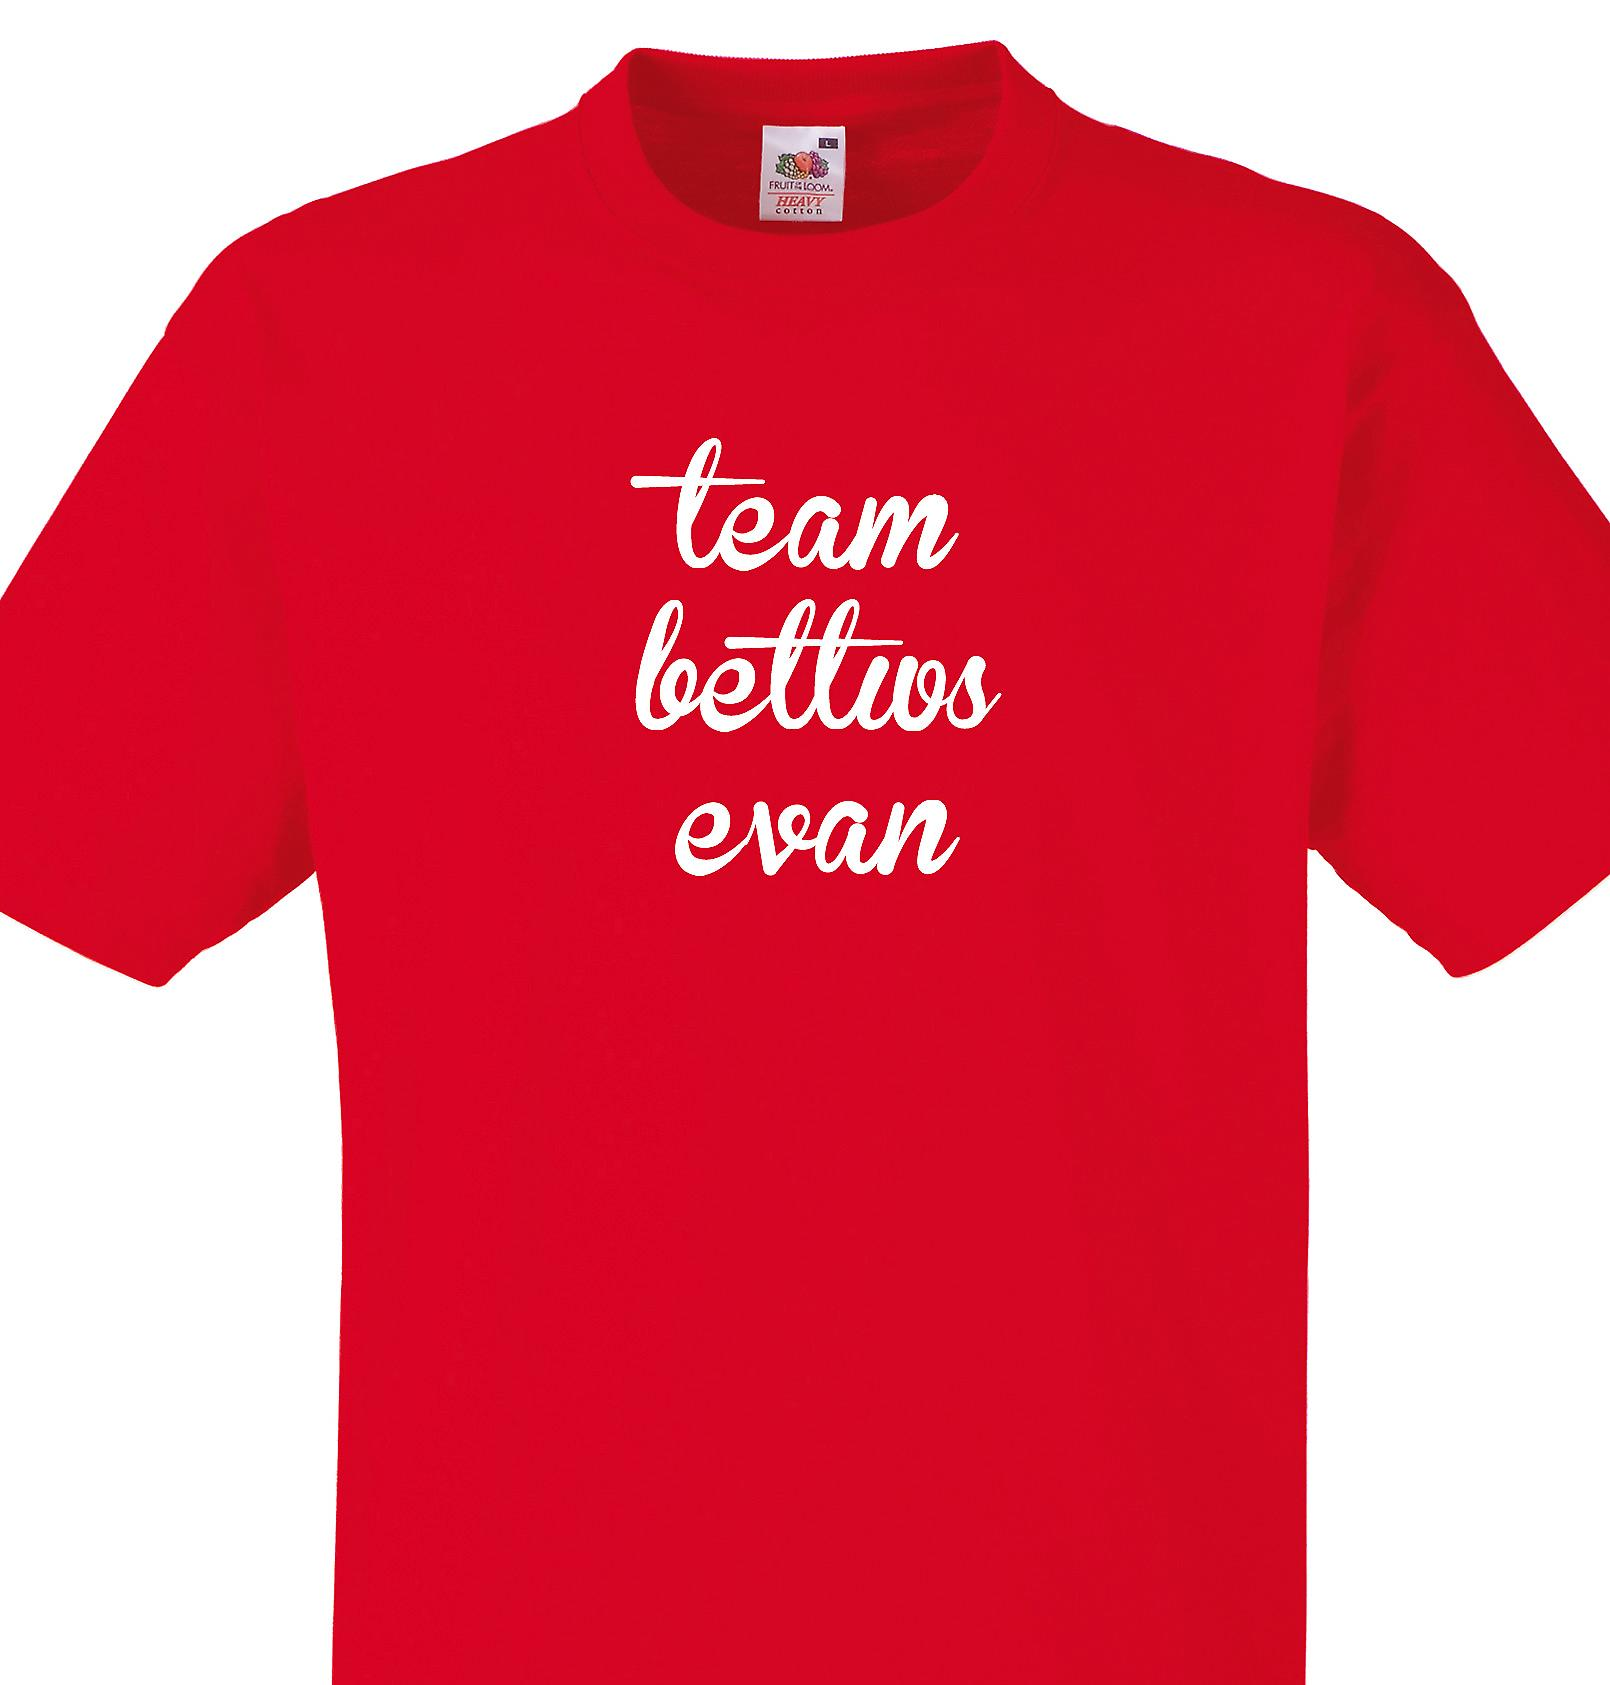 Team Bettws evan Red T shirt